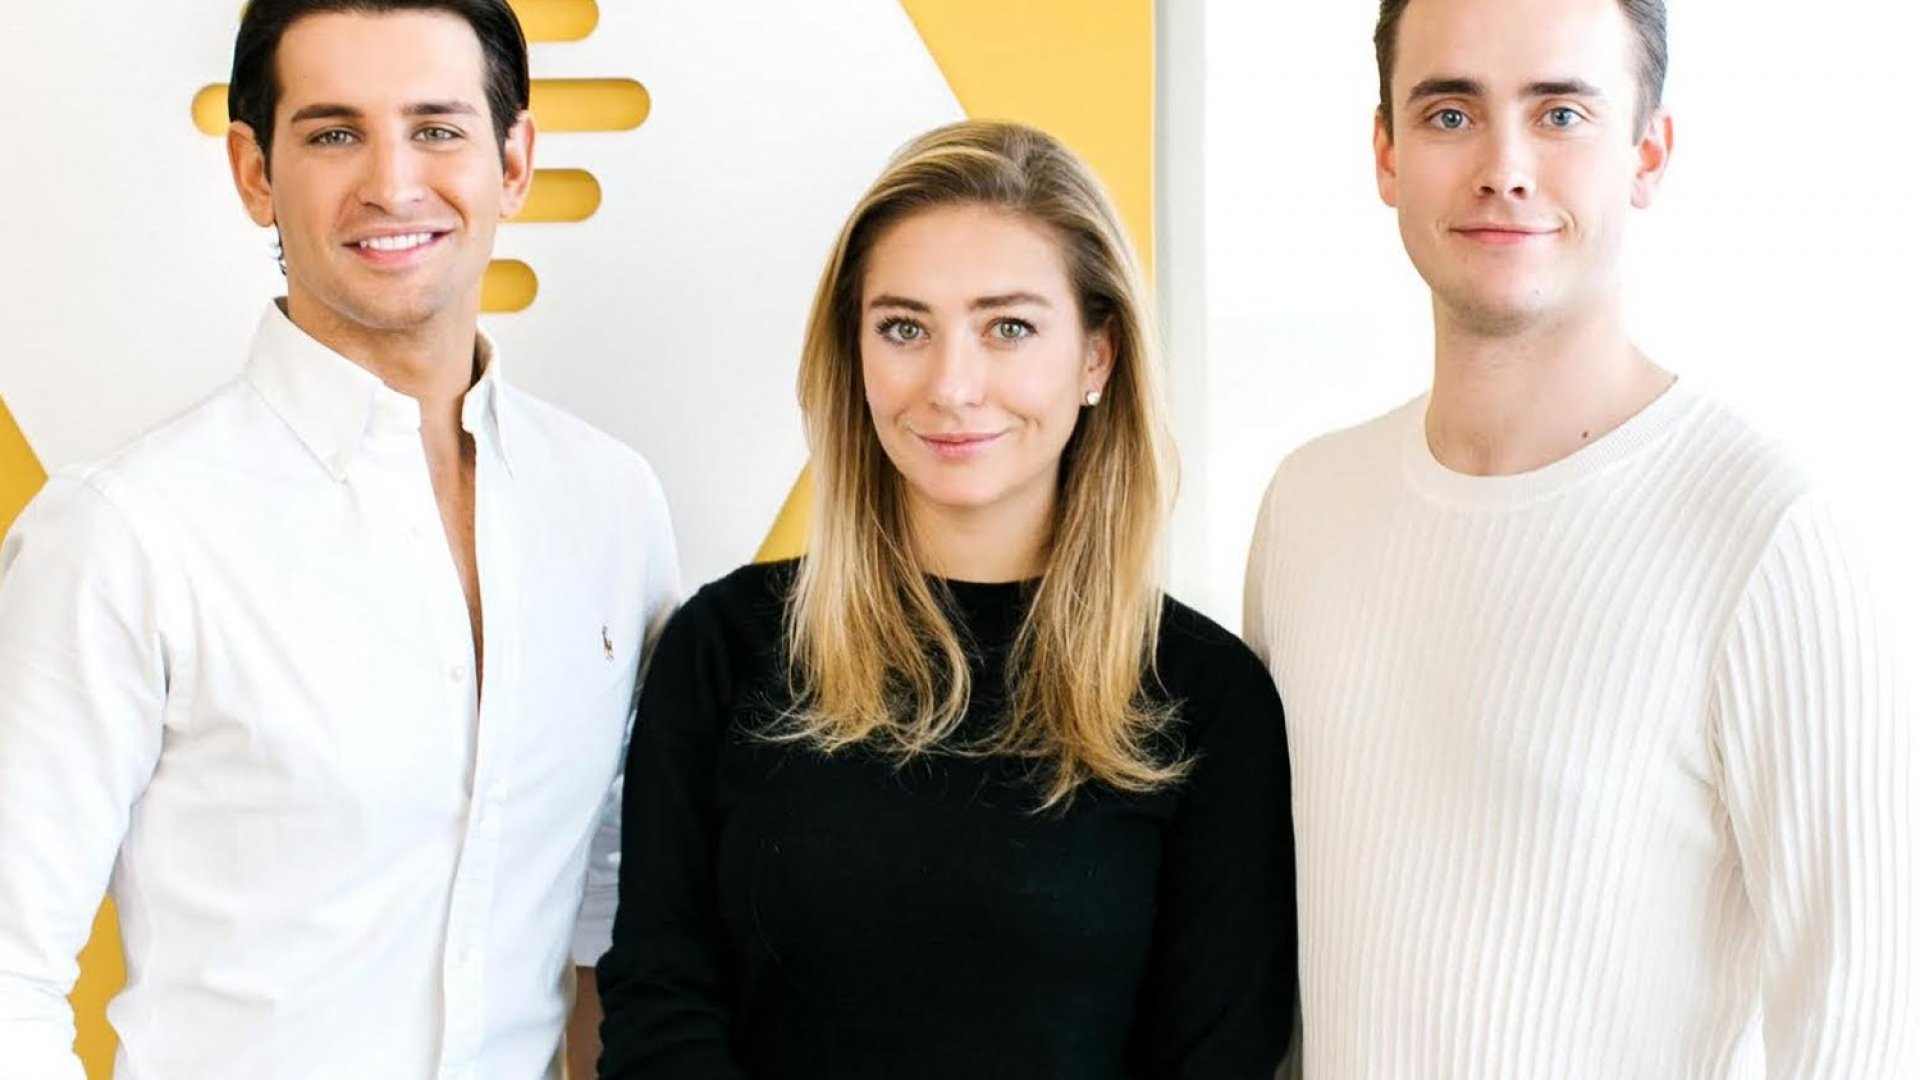 Bumble co-founder and CEO Whitney Wolfe, center, with Chappy co-founders Ollie Locke (left) and Jack Rogers (right.)